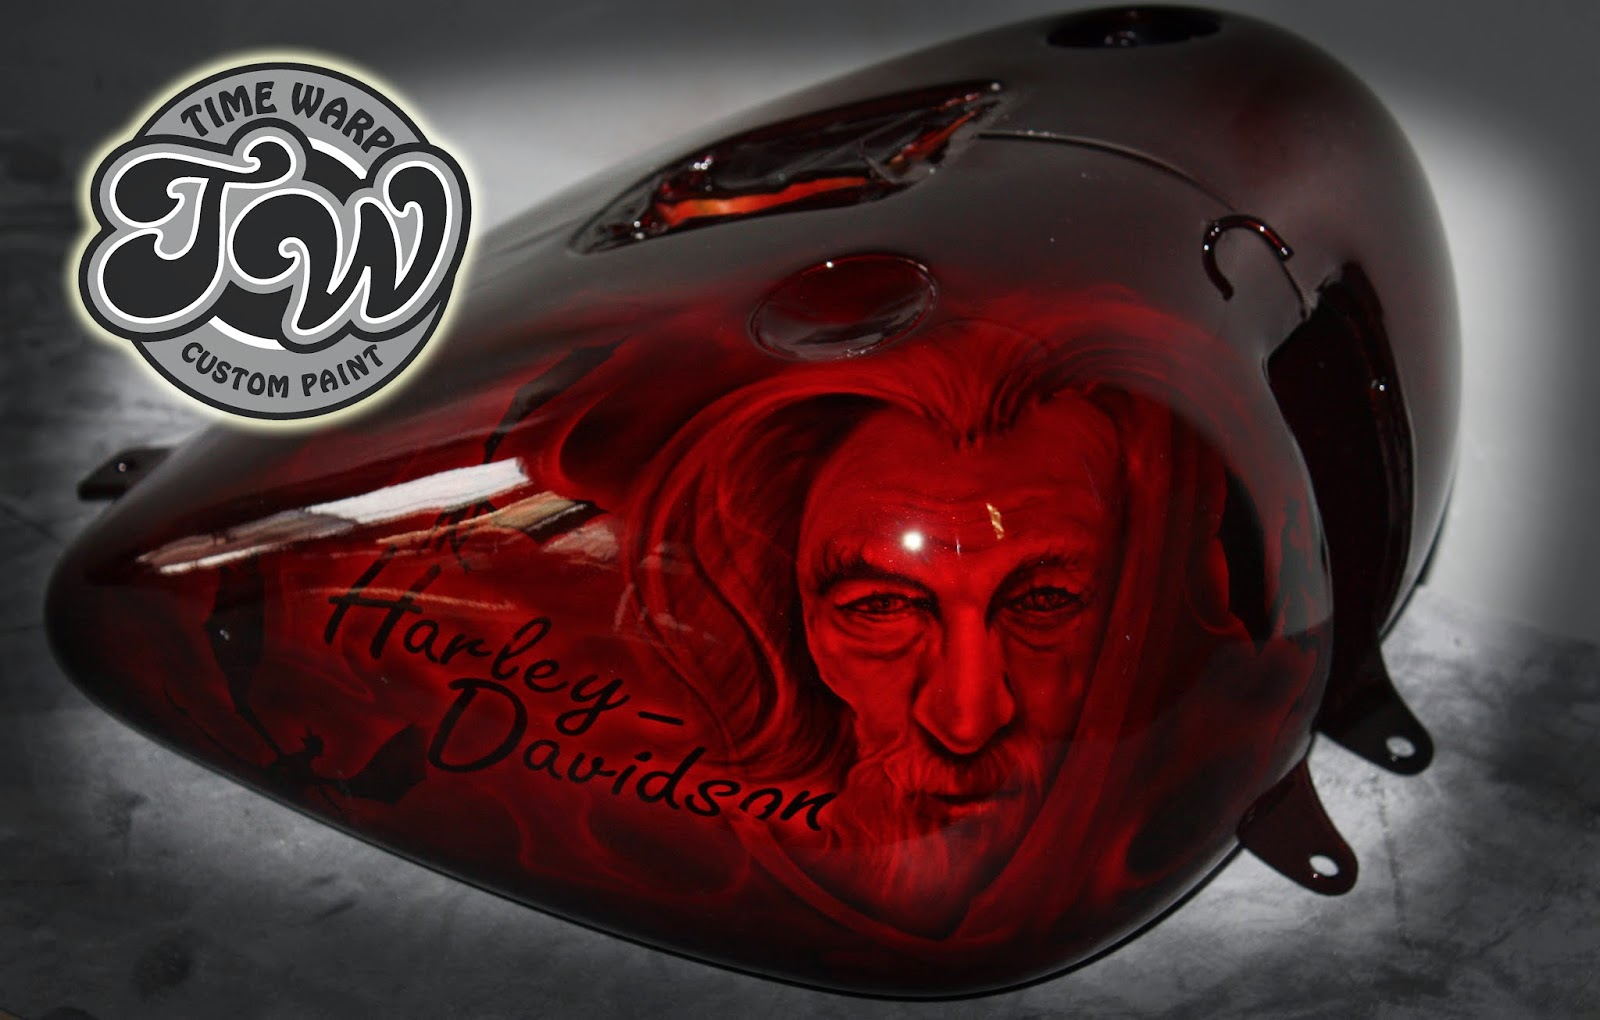 Candy Apple Red Paint Motorcycles